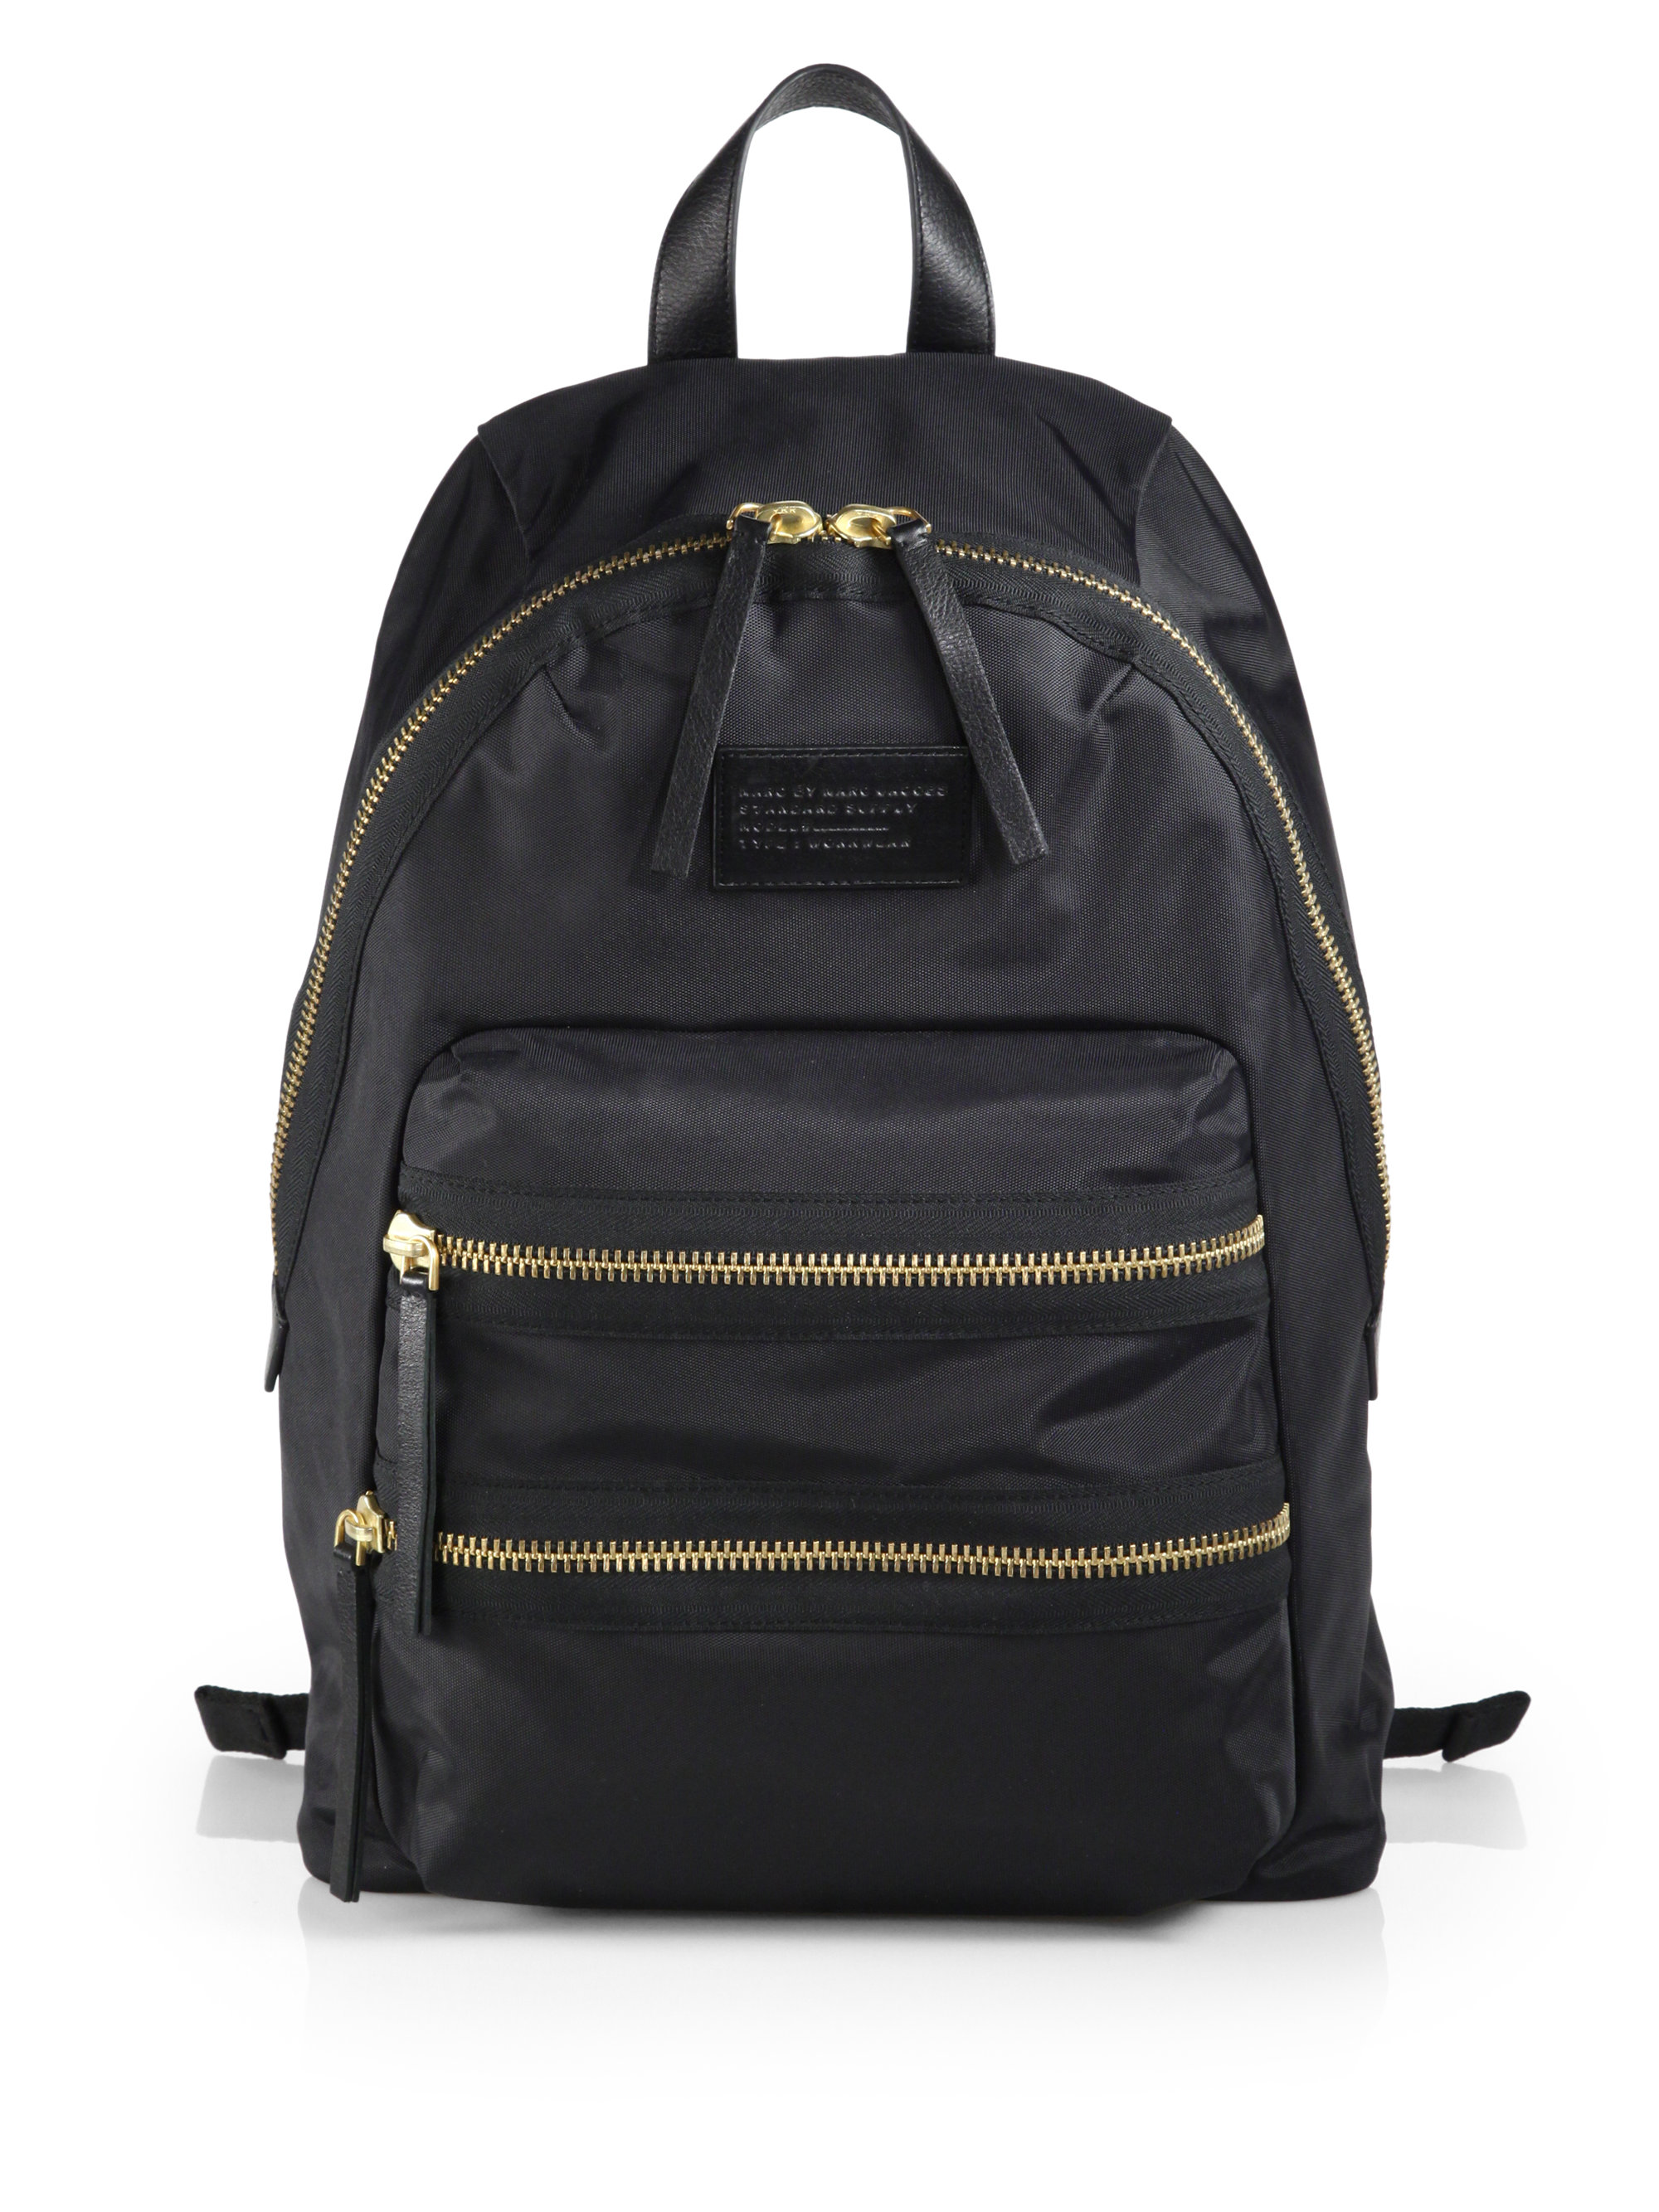 Marc By Marc Jacobs 'Domo Arigato' Backpack in Black